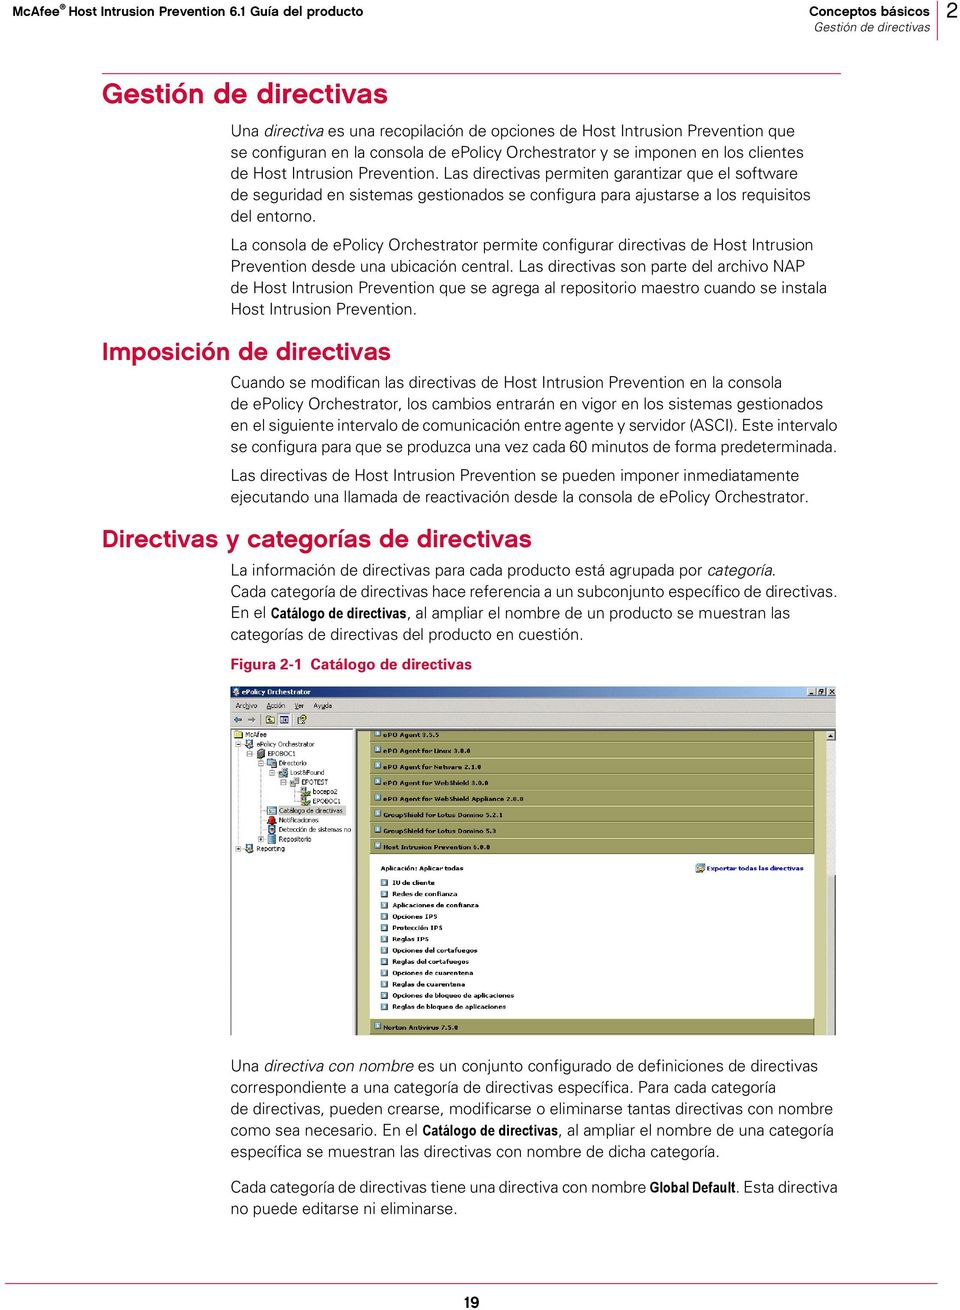 La consola de epolicy Orchestrator permite configurar directivas de Host Intrusion Prevention desde una ubicación central.